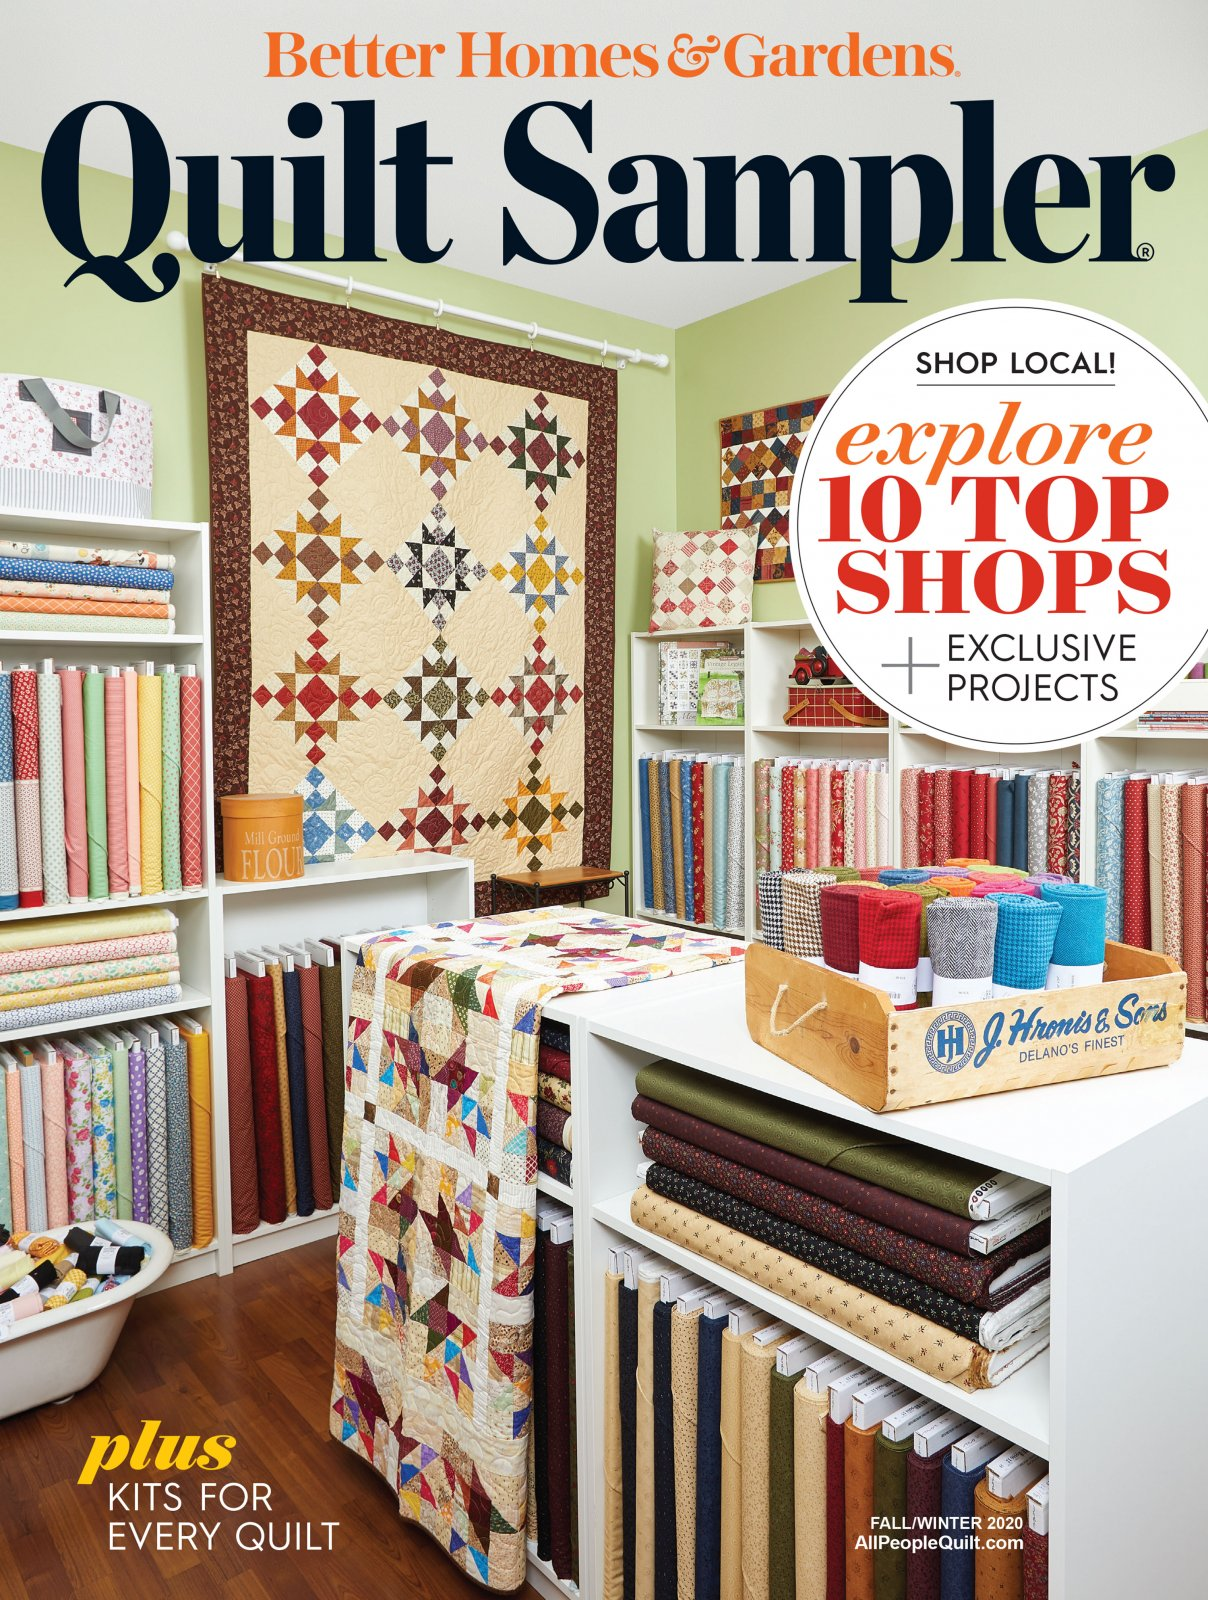 Quilt Sampler Fall/Winter 2020 Magazine